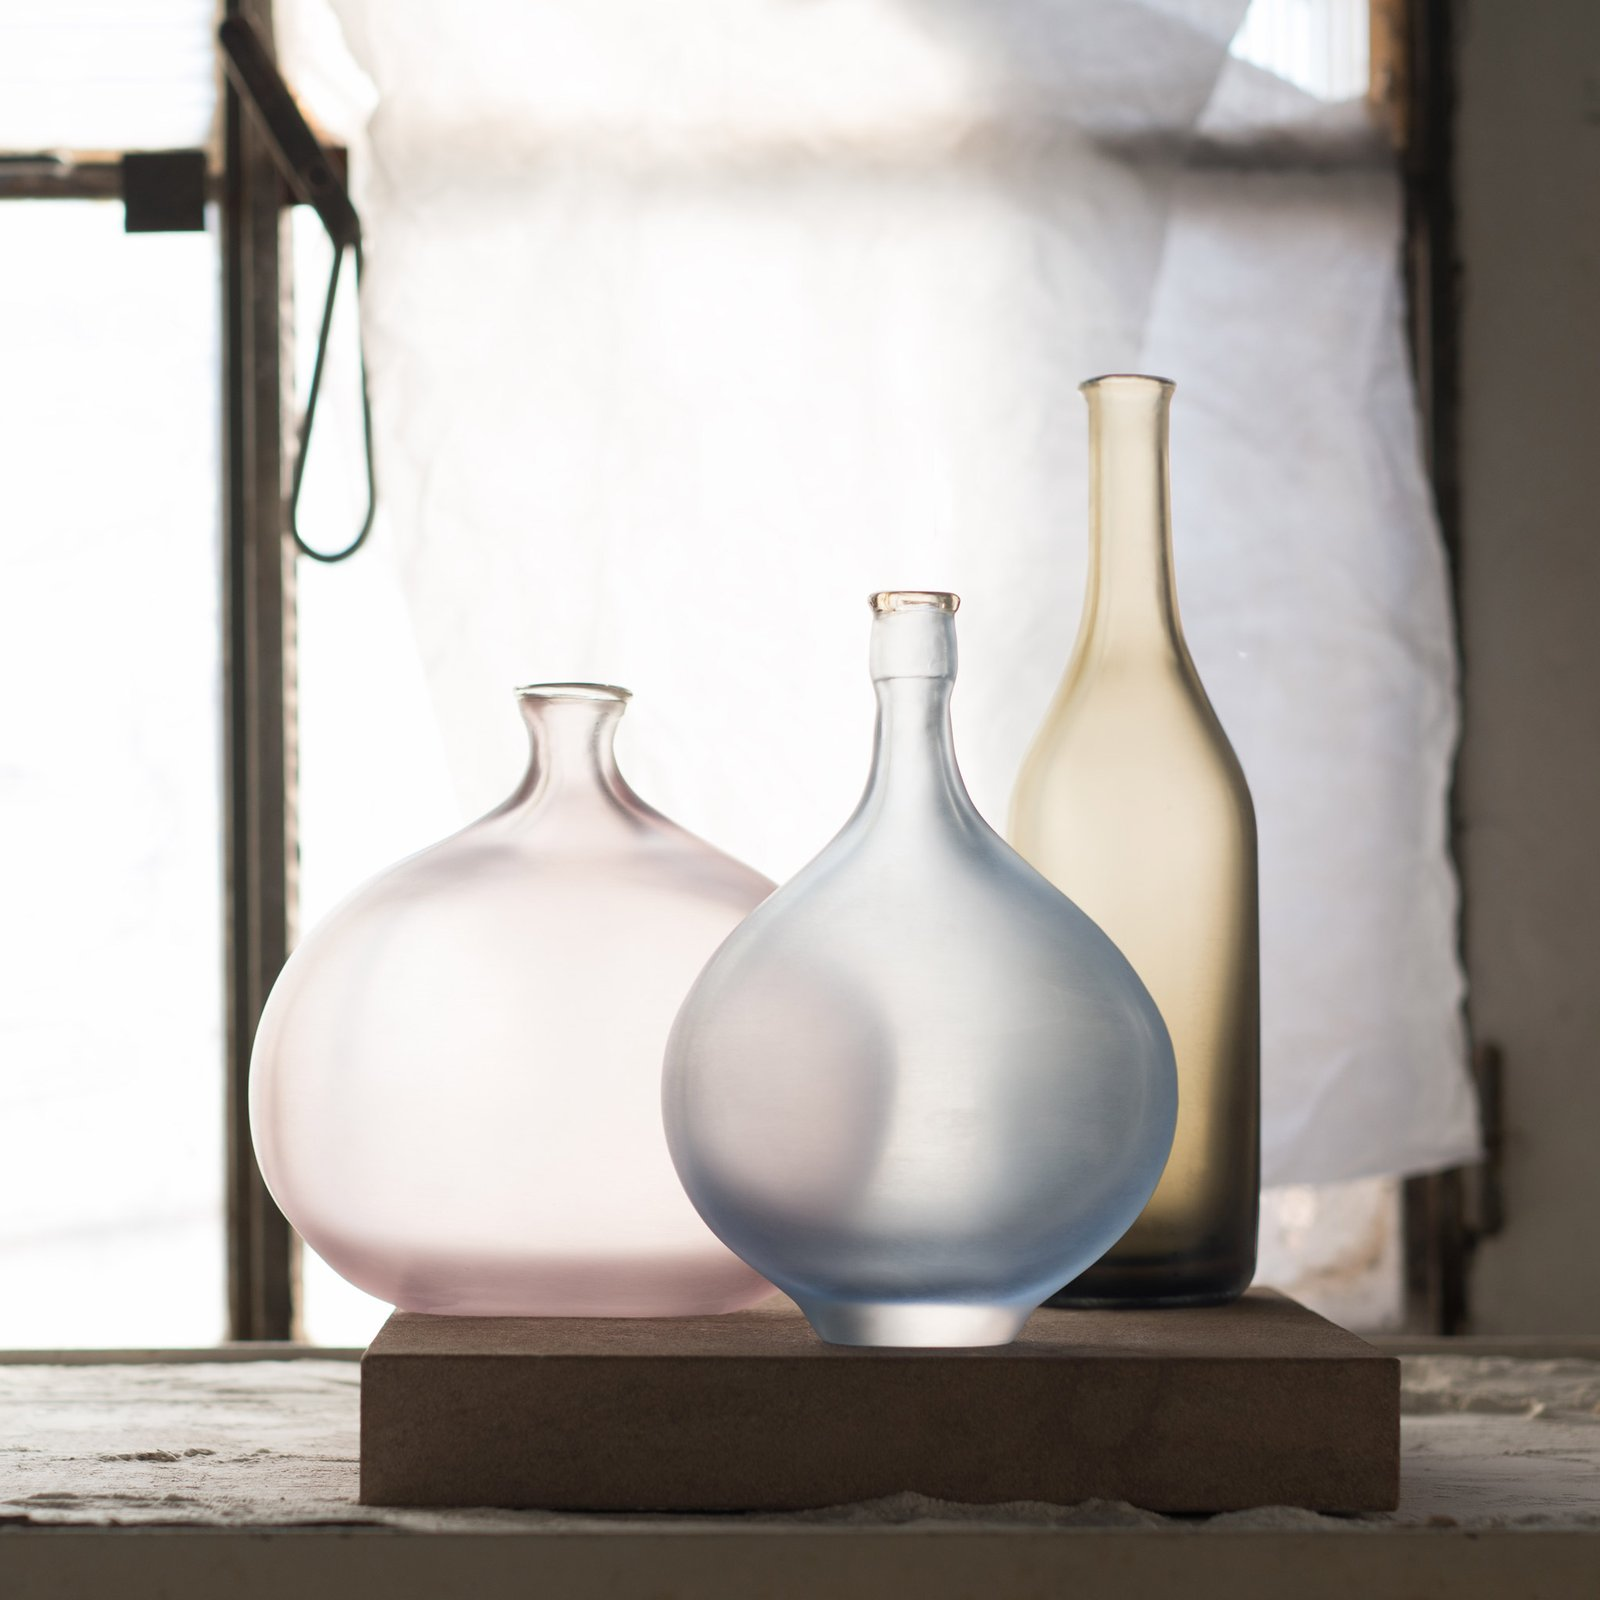 """IL Silenzio Dei Colori - Designed by Matteo Thun for Murano glassmakers Venini, the Il Silenzio dei Colori collection consists of four different sets of glass objects inspired by Italian painter Giorgio Morandi. Produced from blown-glass and expertly finished using cold-processing techniques, the vases and bottles feature a smooth translucent finish. Finally, each limited-edition set is presented on a Santafiore stone tile. This particular set comprises of three vessels in Violet, Marine Blue and Grey. Please note: dimensions and colours may vary due to the handcrafted nature of this product.  """"Now it's the colours that are left speechless, their silent words are so profound that only the eye can perceive. This is the magic that makes each and every one of the four combinations created by Matteo Thun in 2018 truly unique."""" 